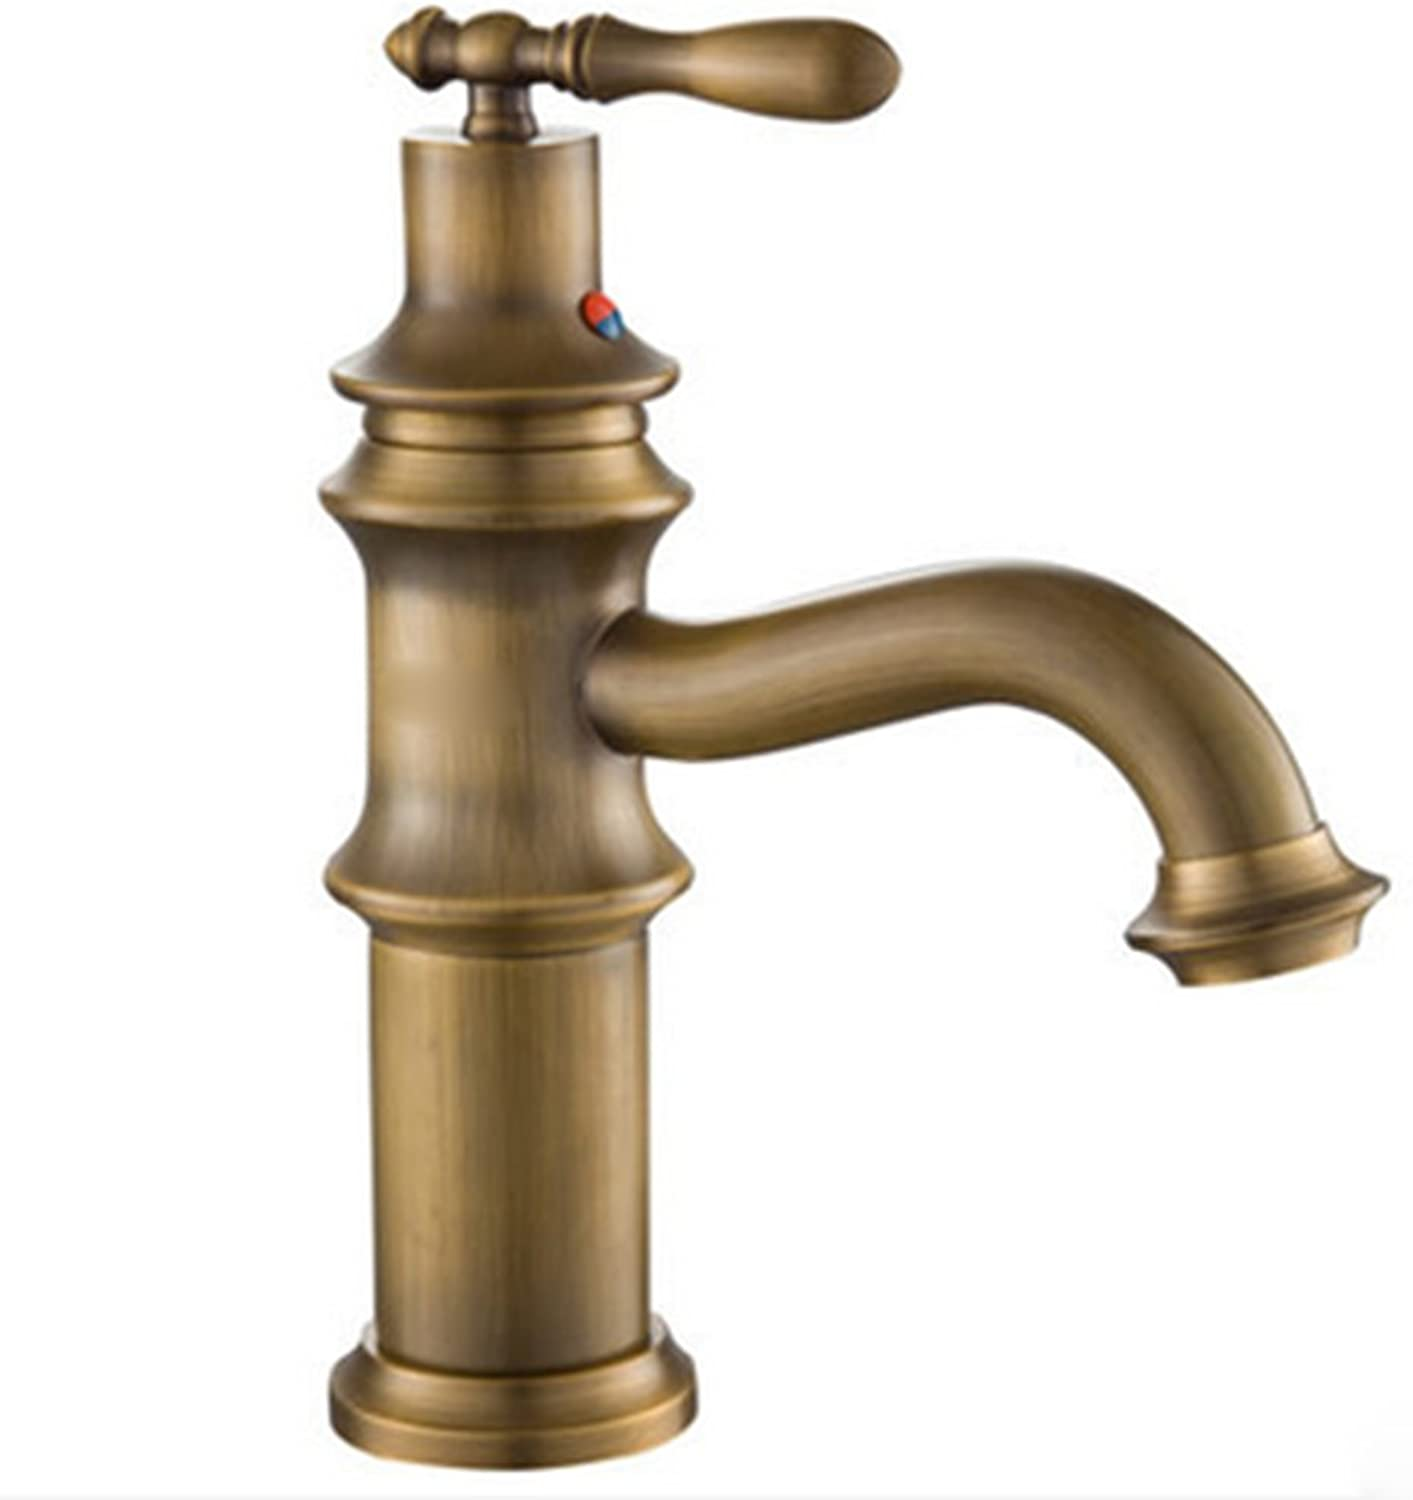 Full Copper Bronze Faucet, Bathroom Cabinet hot and Cold Faucet, Retro Carved Faucet